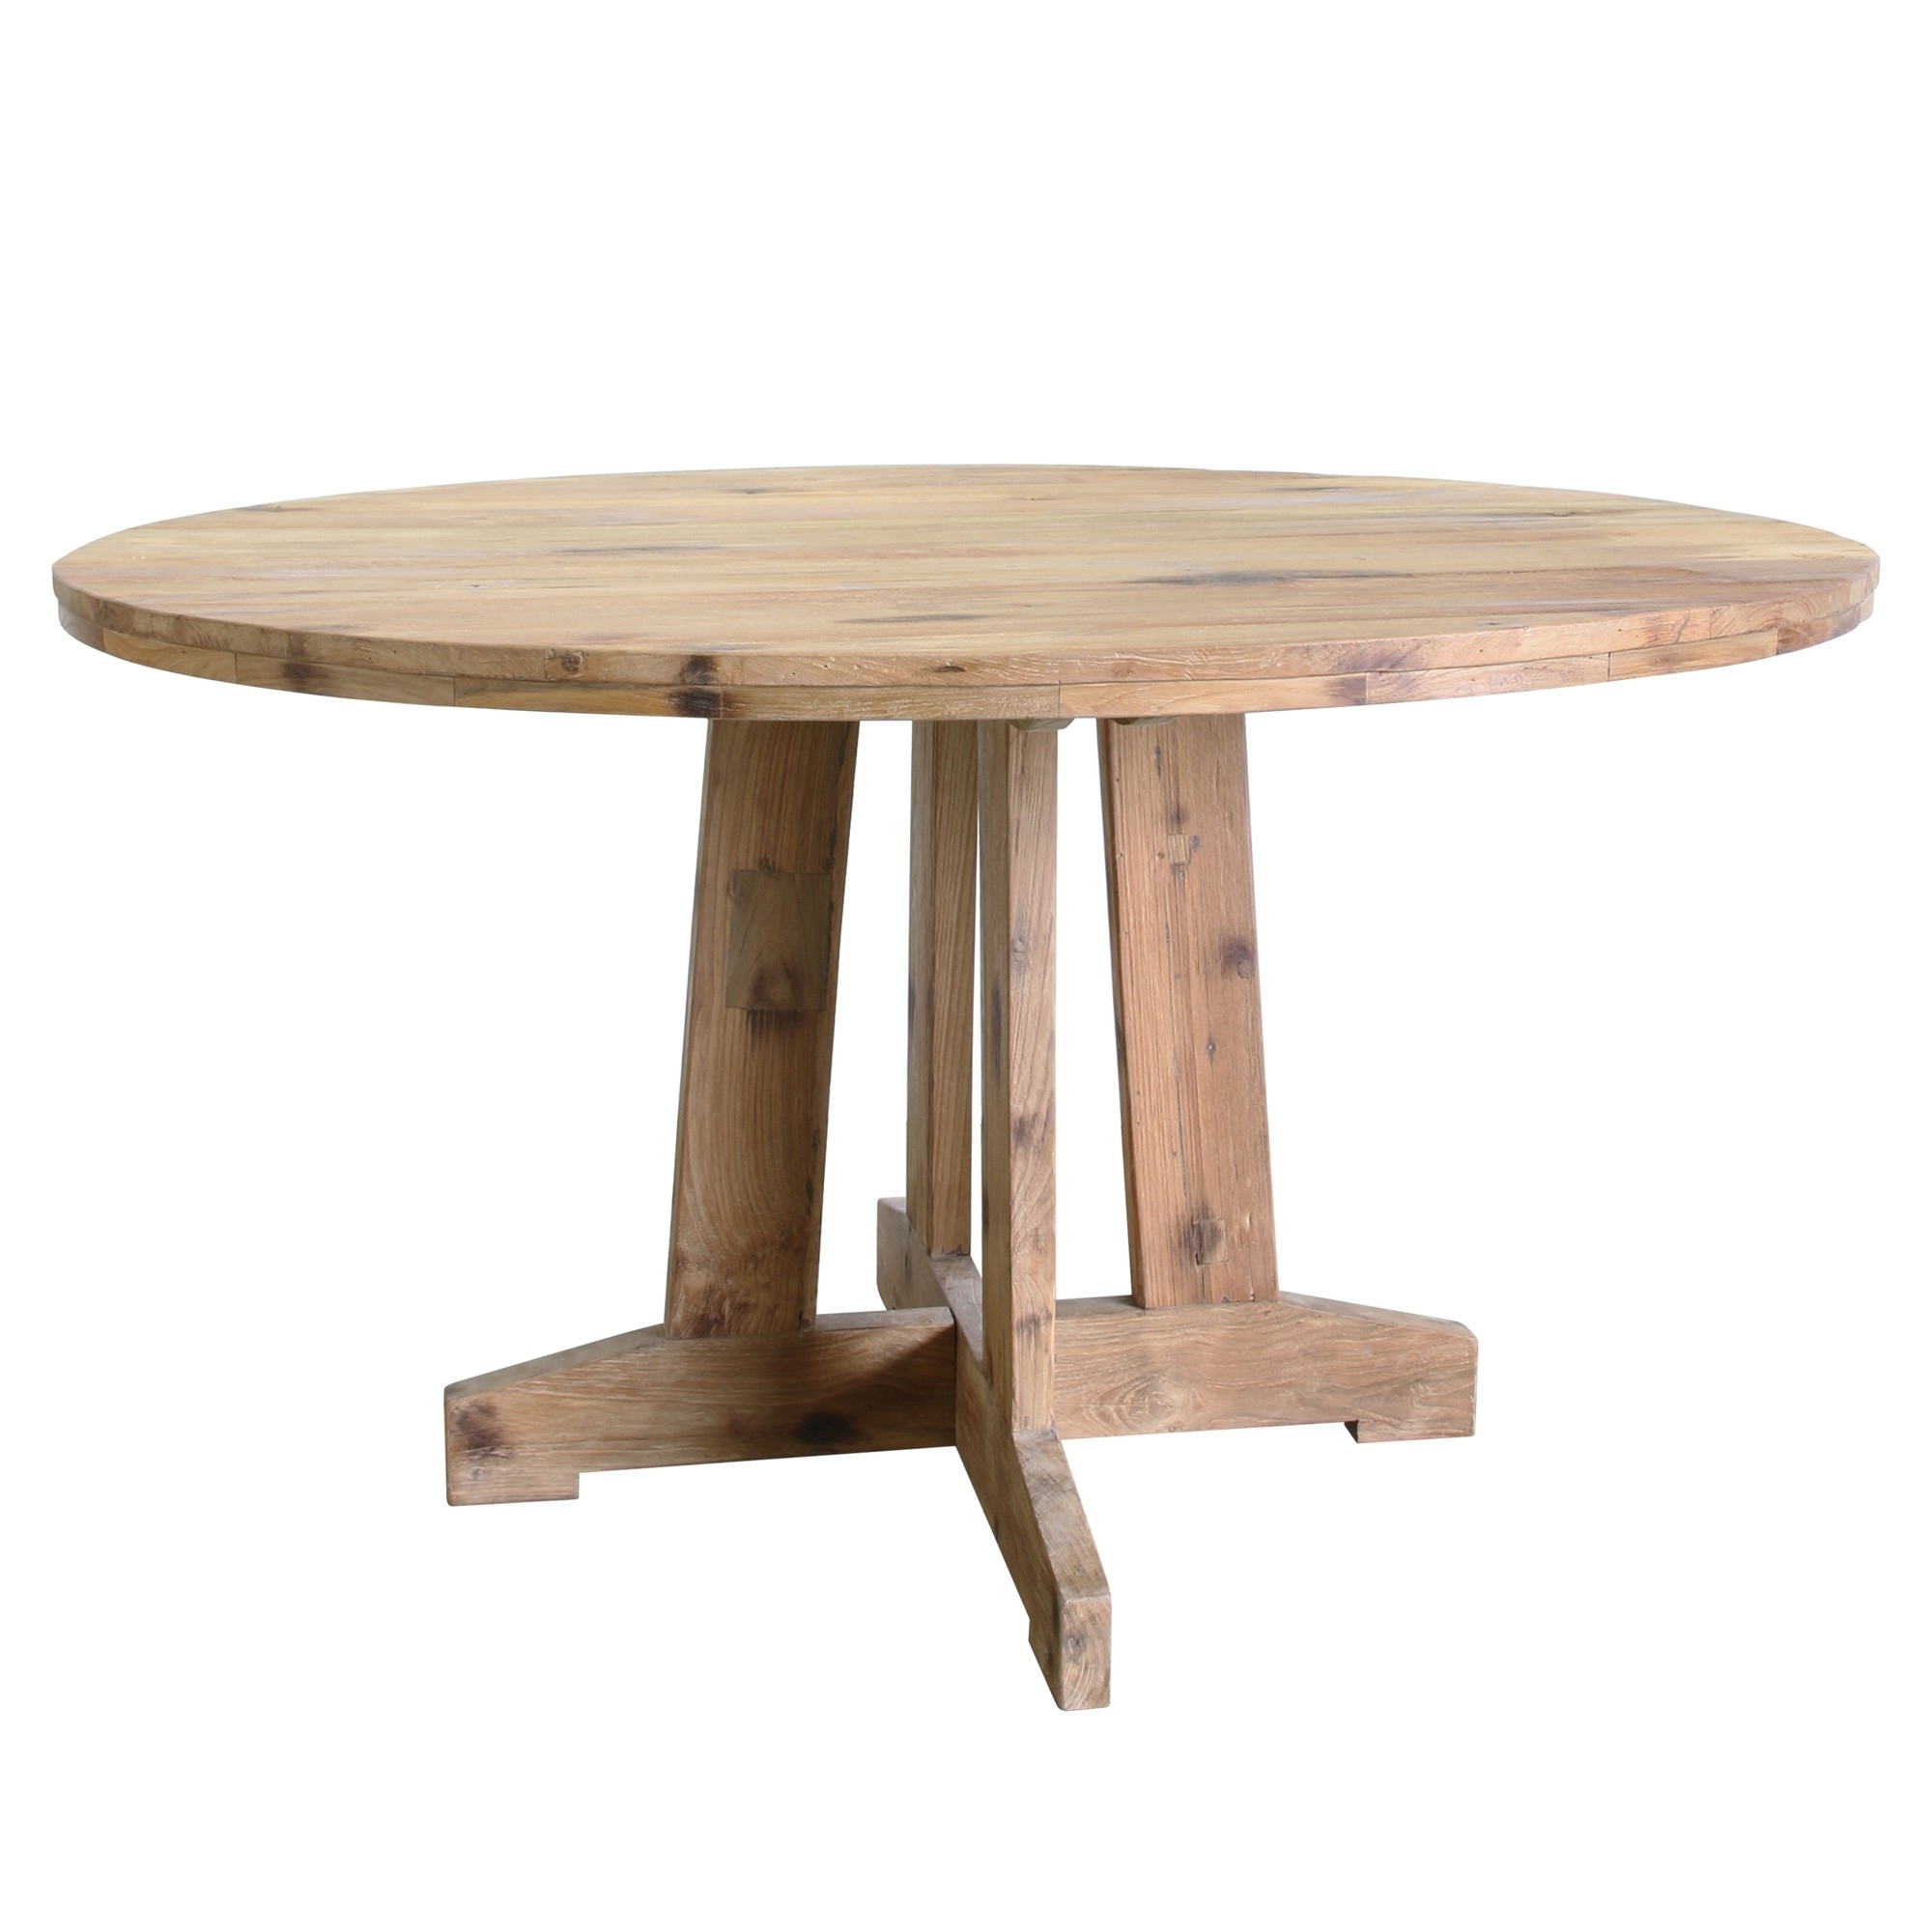 Newest Round Reclaimed Teak Dining Table With Round Teak Dining Tables (View 2 of 25)